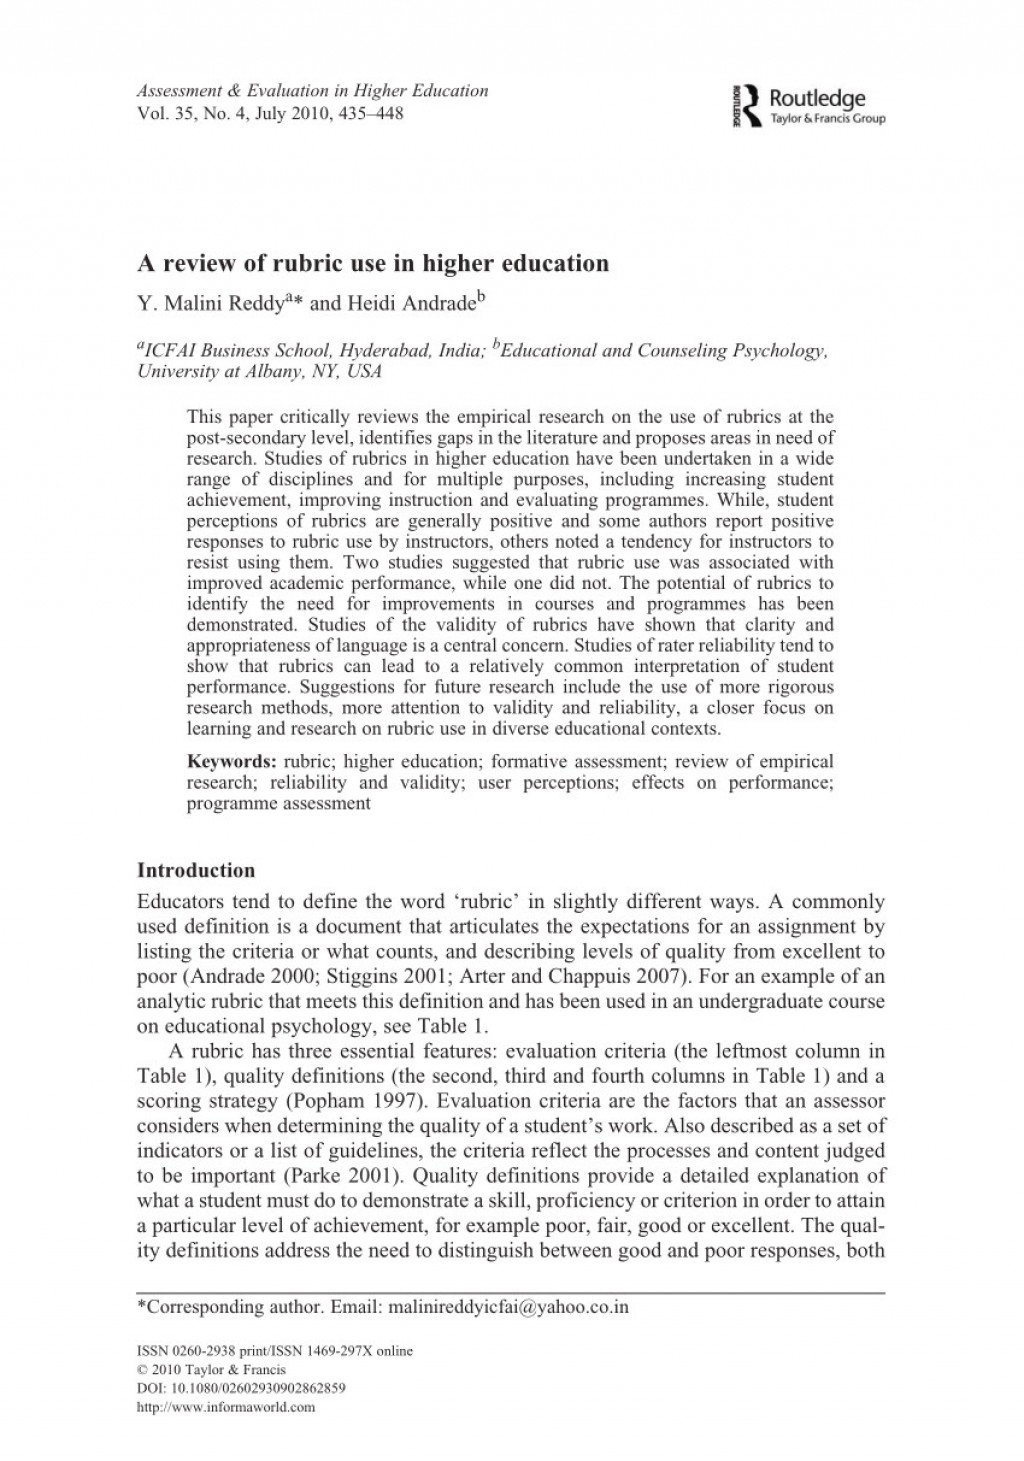 007 Higher Education Research Paper Pdf Rubric High School Lovely Review Of Use Amazing Large